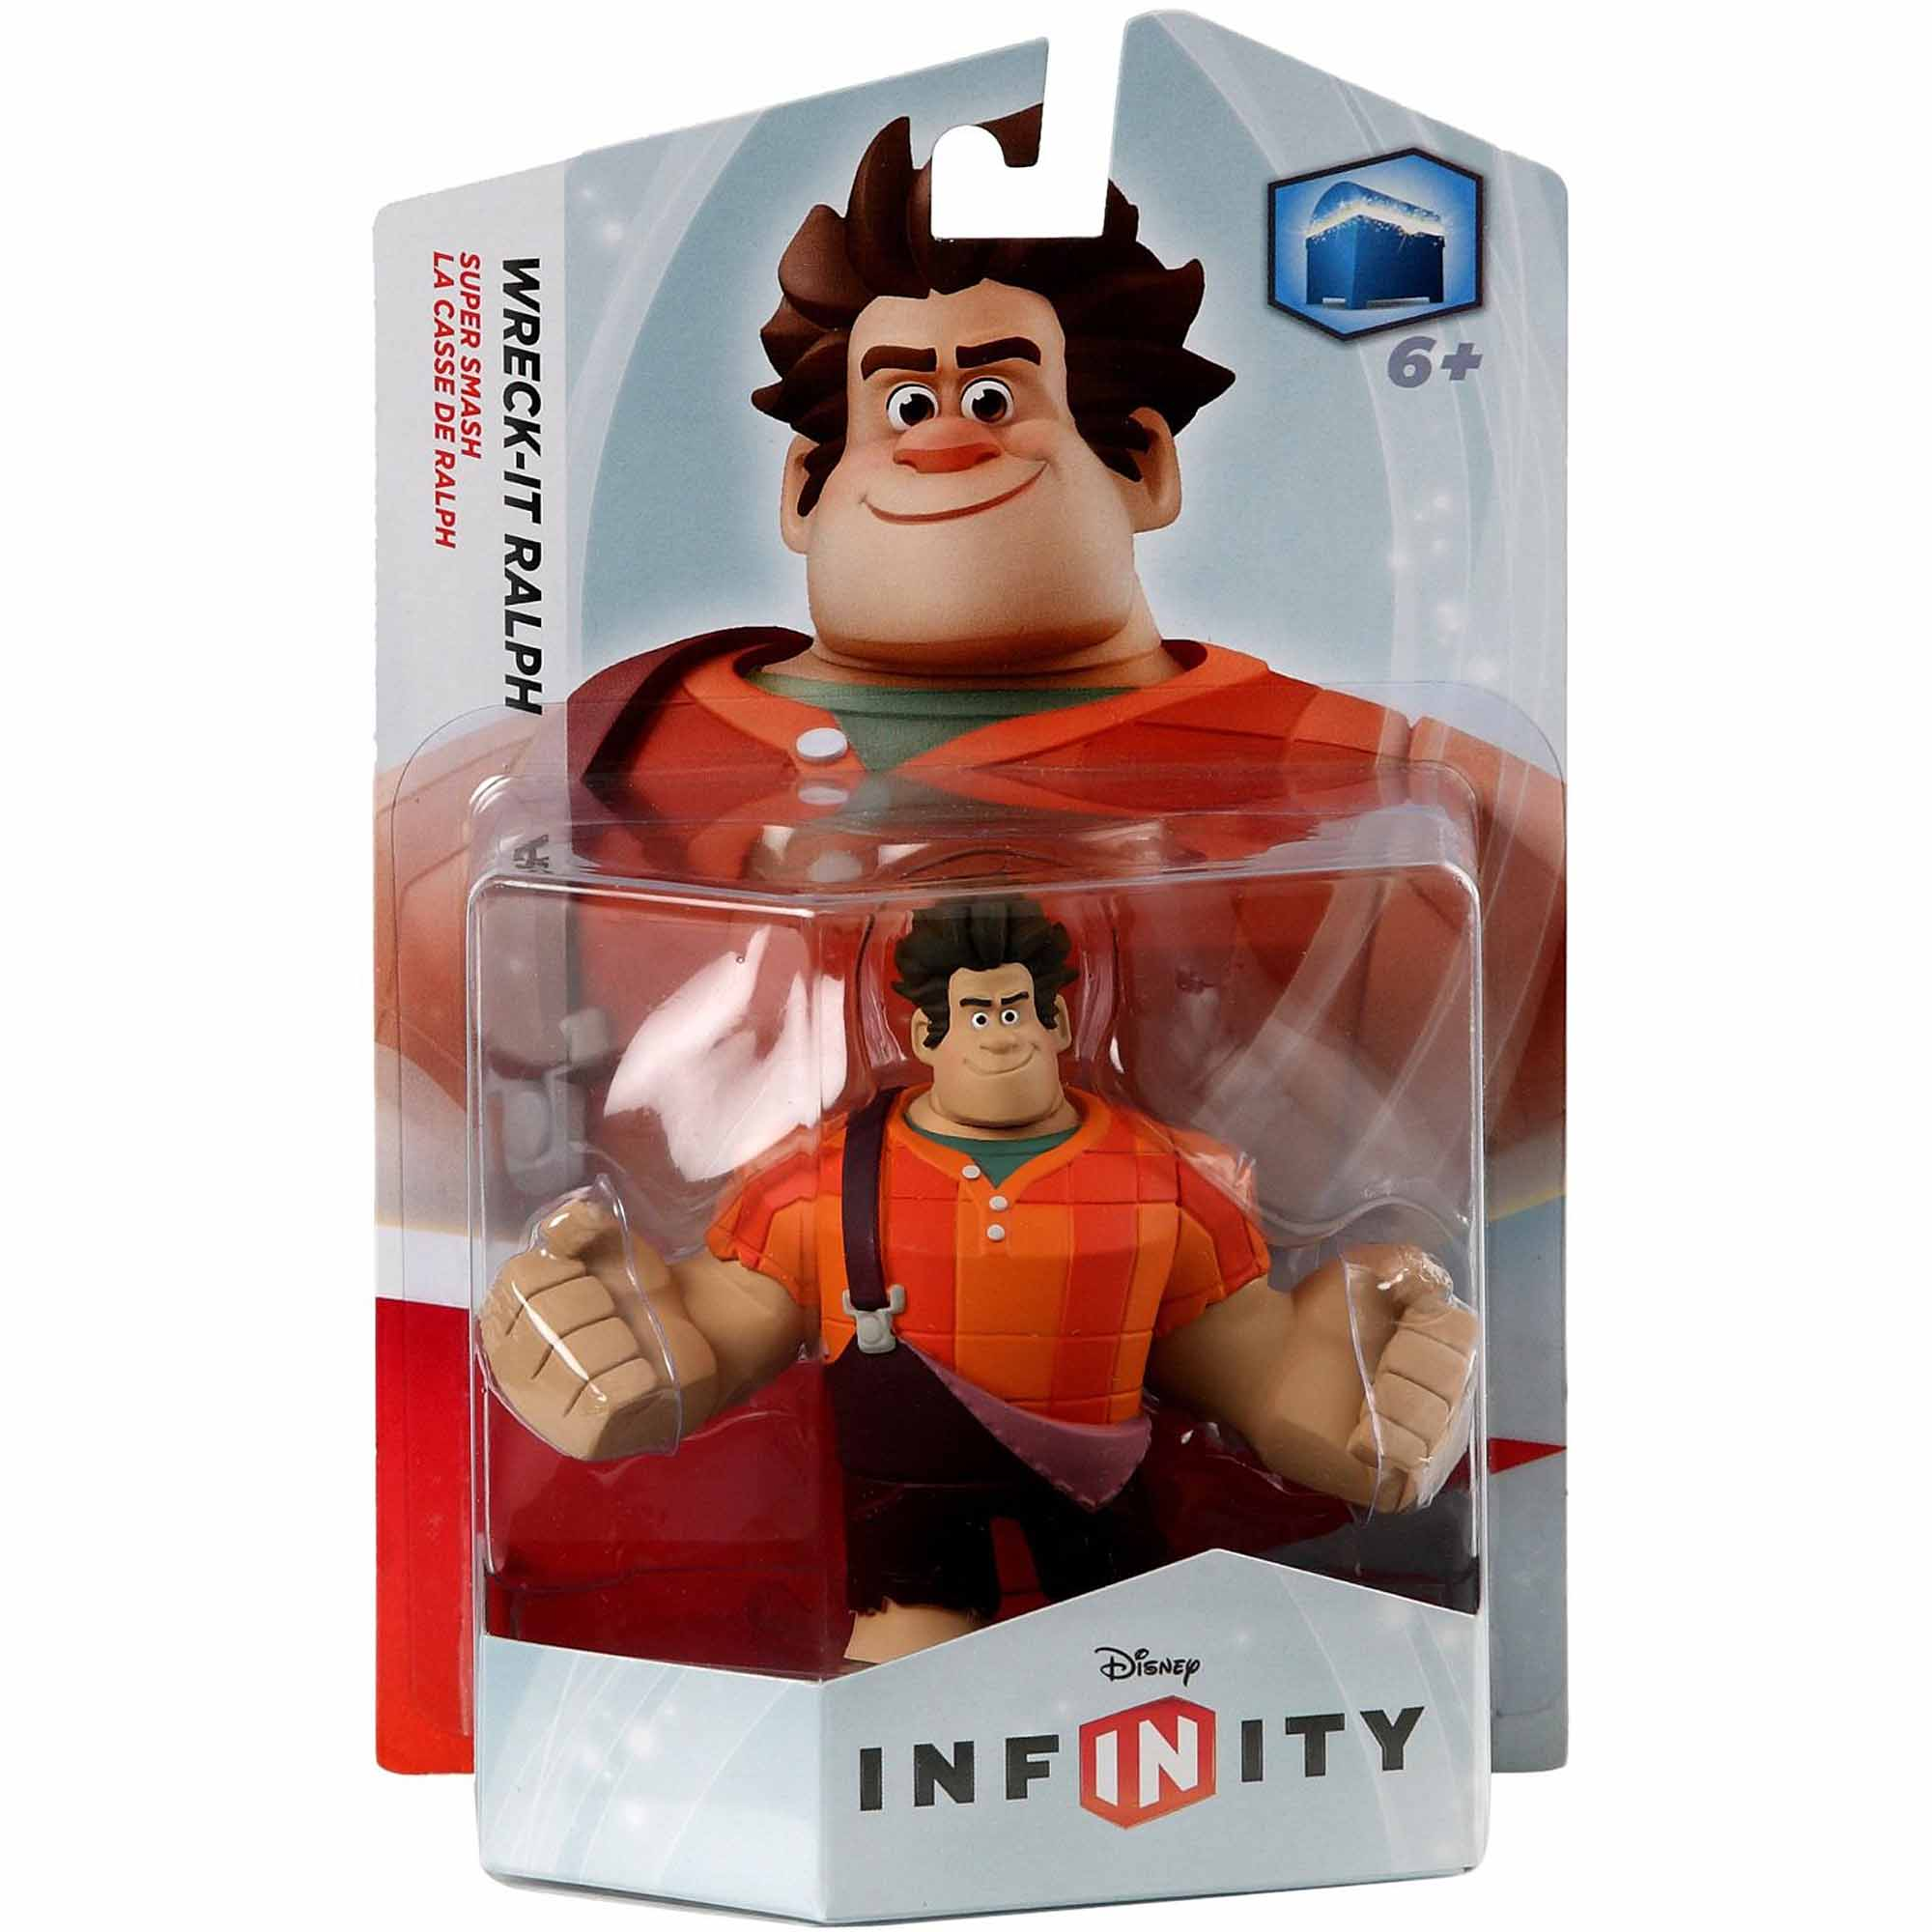 Disney Infinity Figure - Wreck-It Ralph